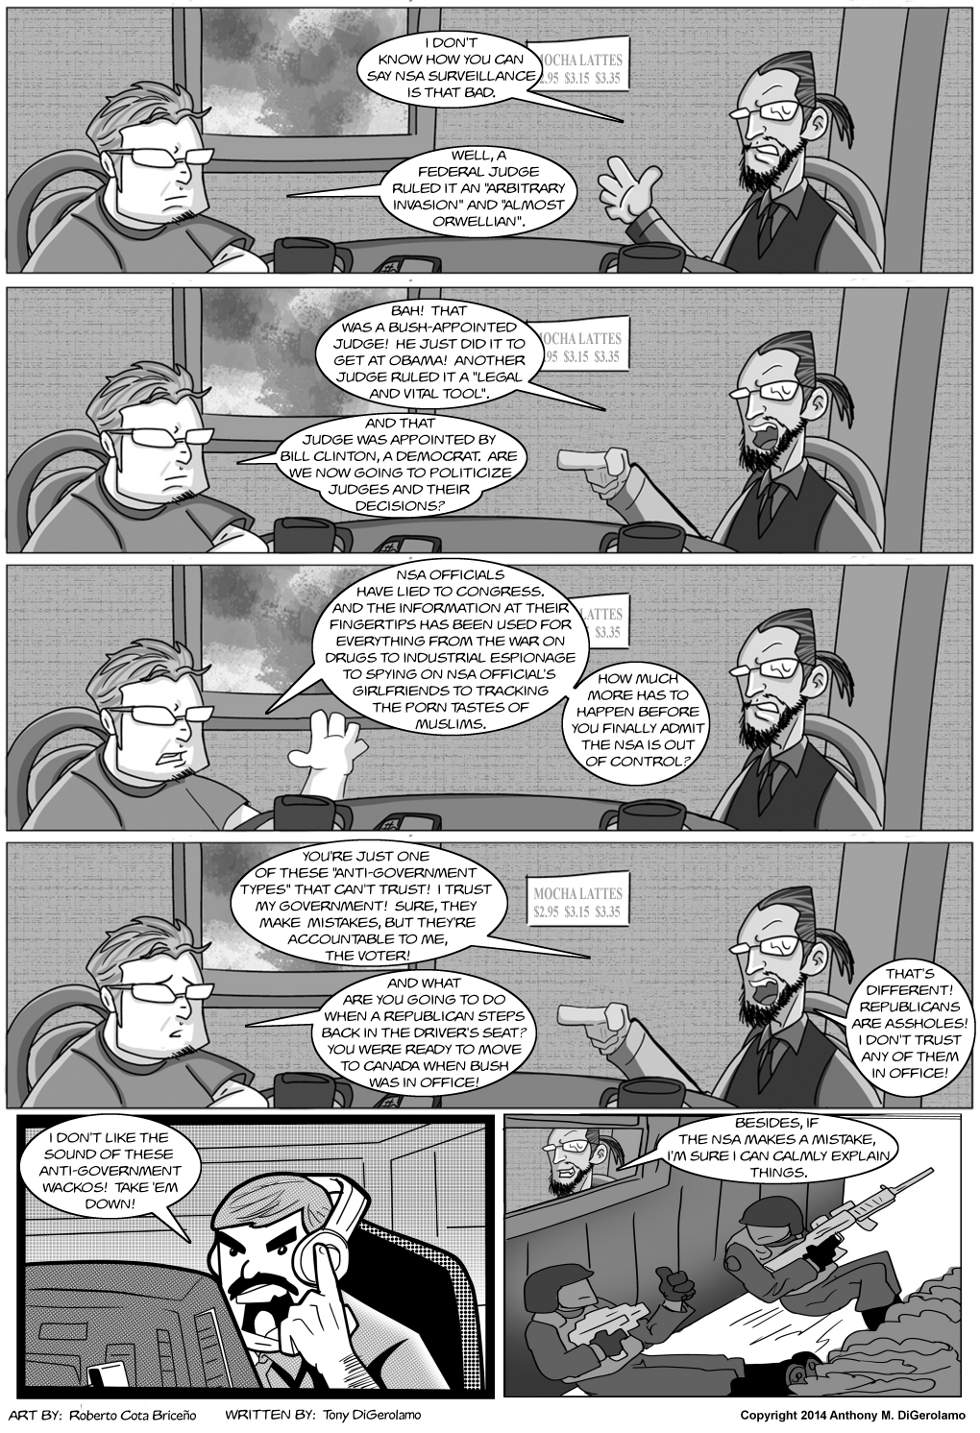 The Antiwar Comic:  Who's the Wacko Now?